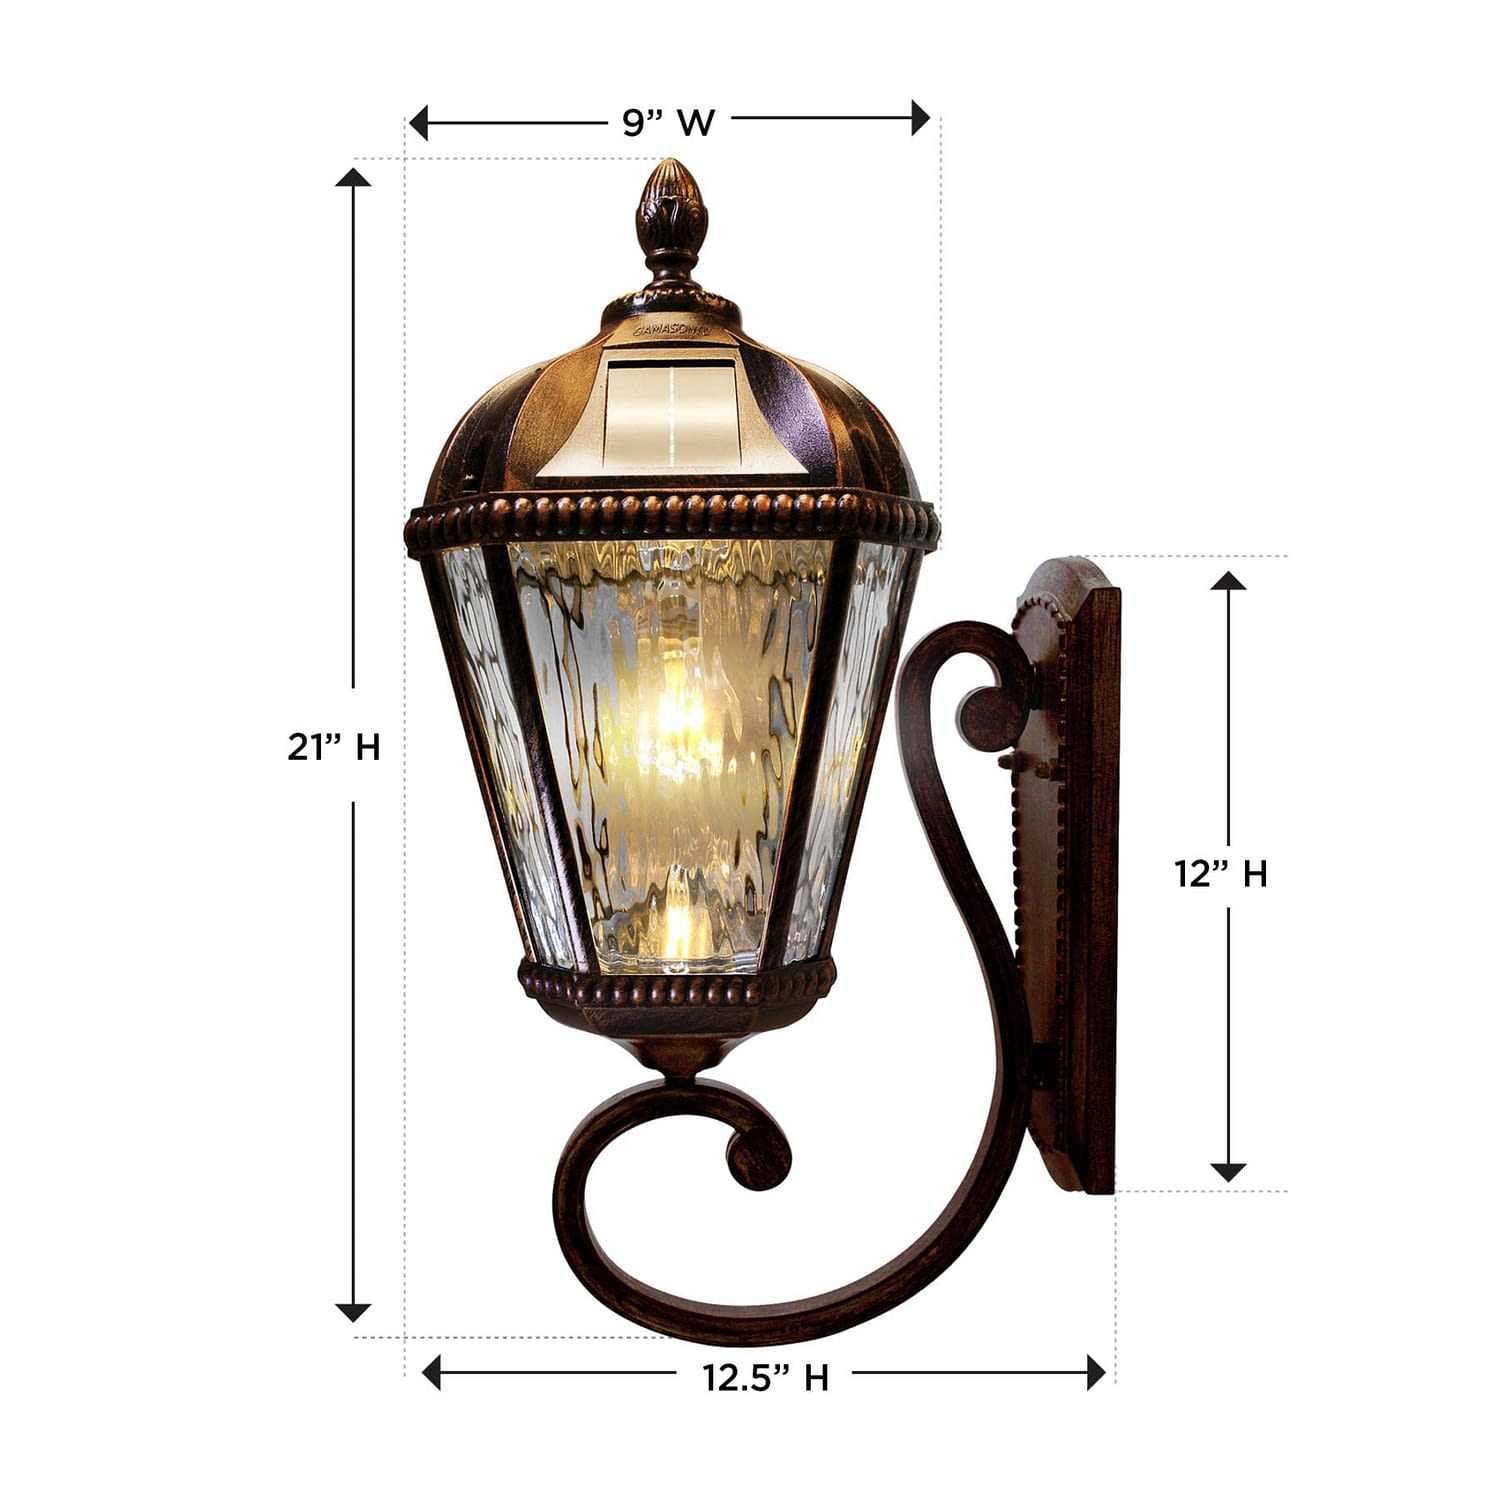 Royal Bulb Wall Mount Solar Lamp Dimensions